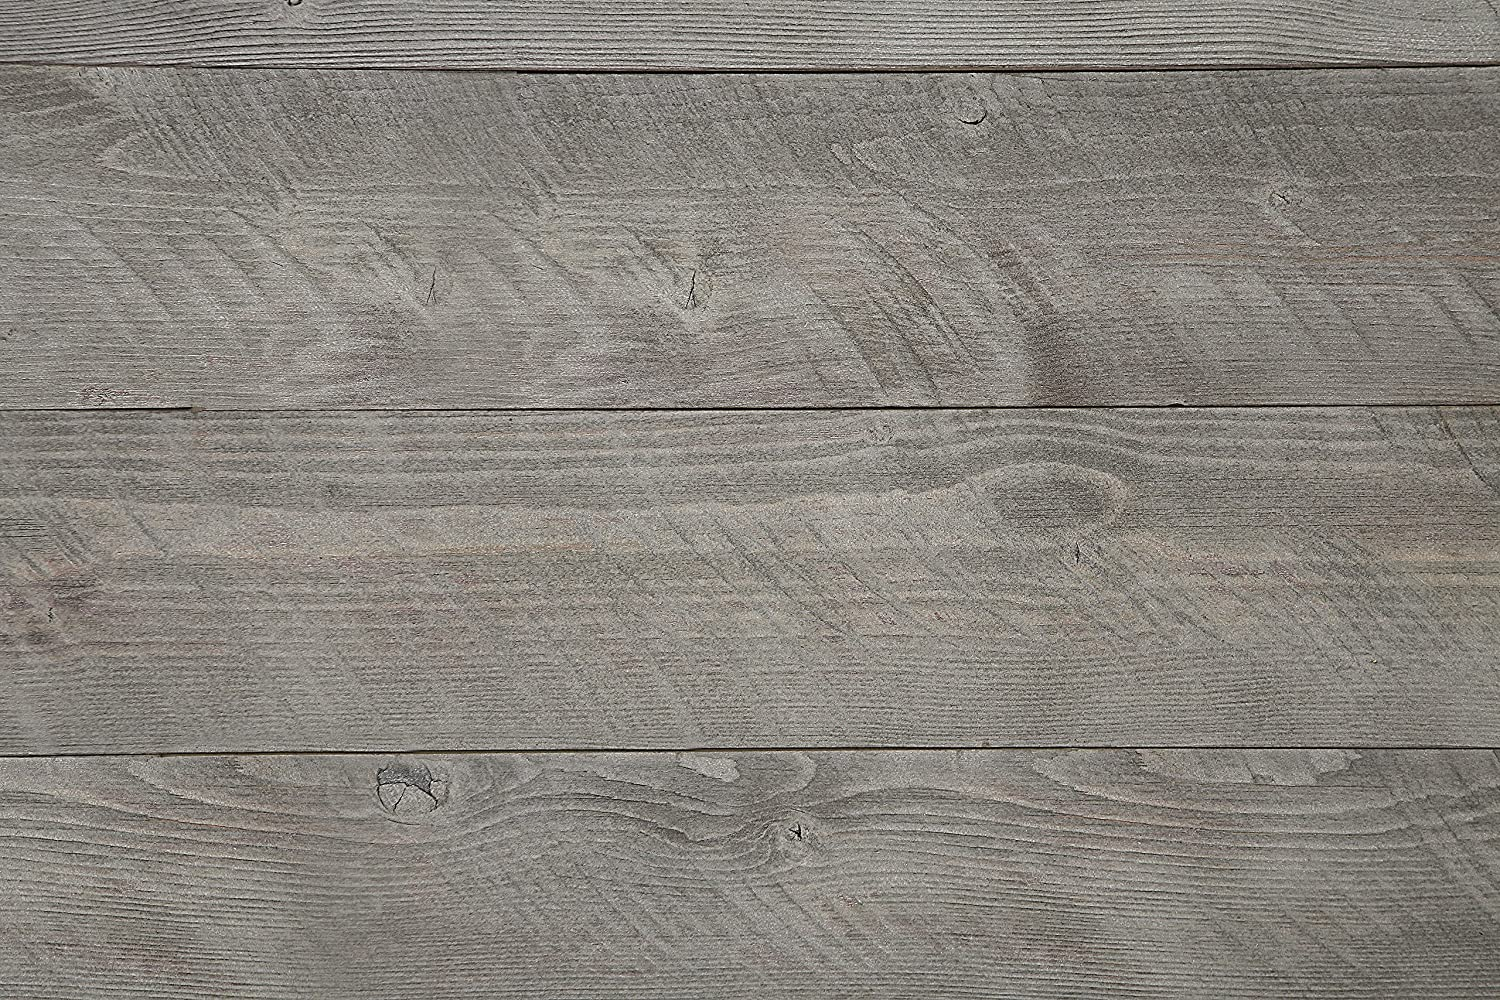 WoodyWalls Self-adhesive, Wood Wall Panels. (19.5 sq. ft. per box) Gray Color woodplunk_20sqf_grey